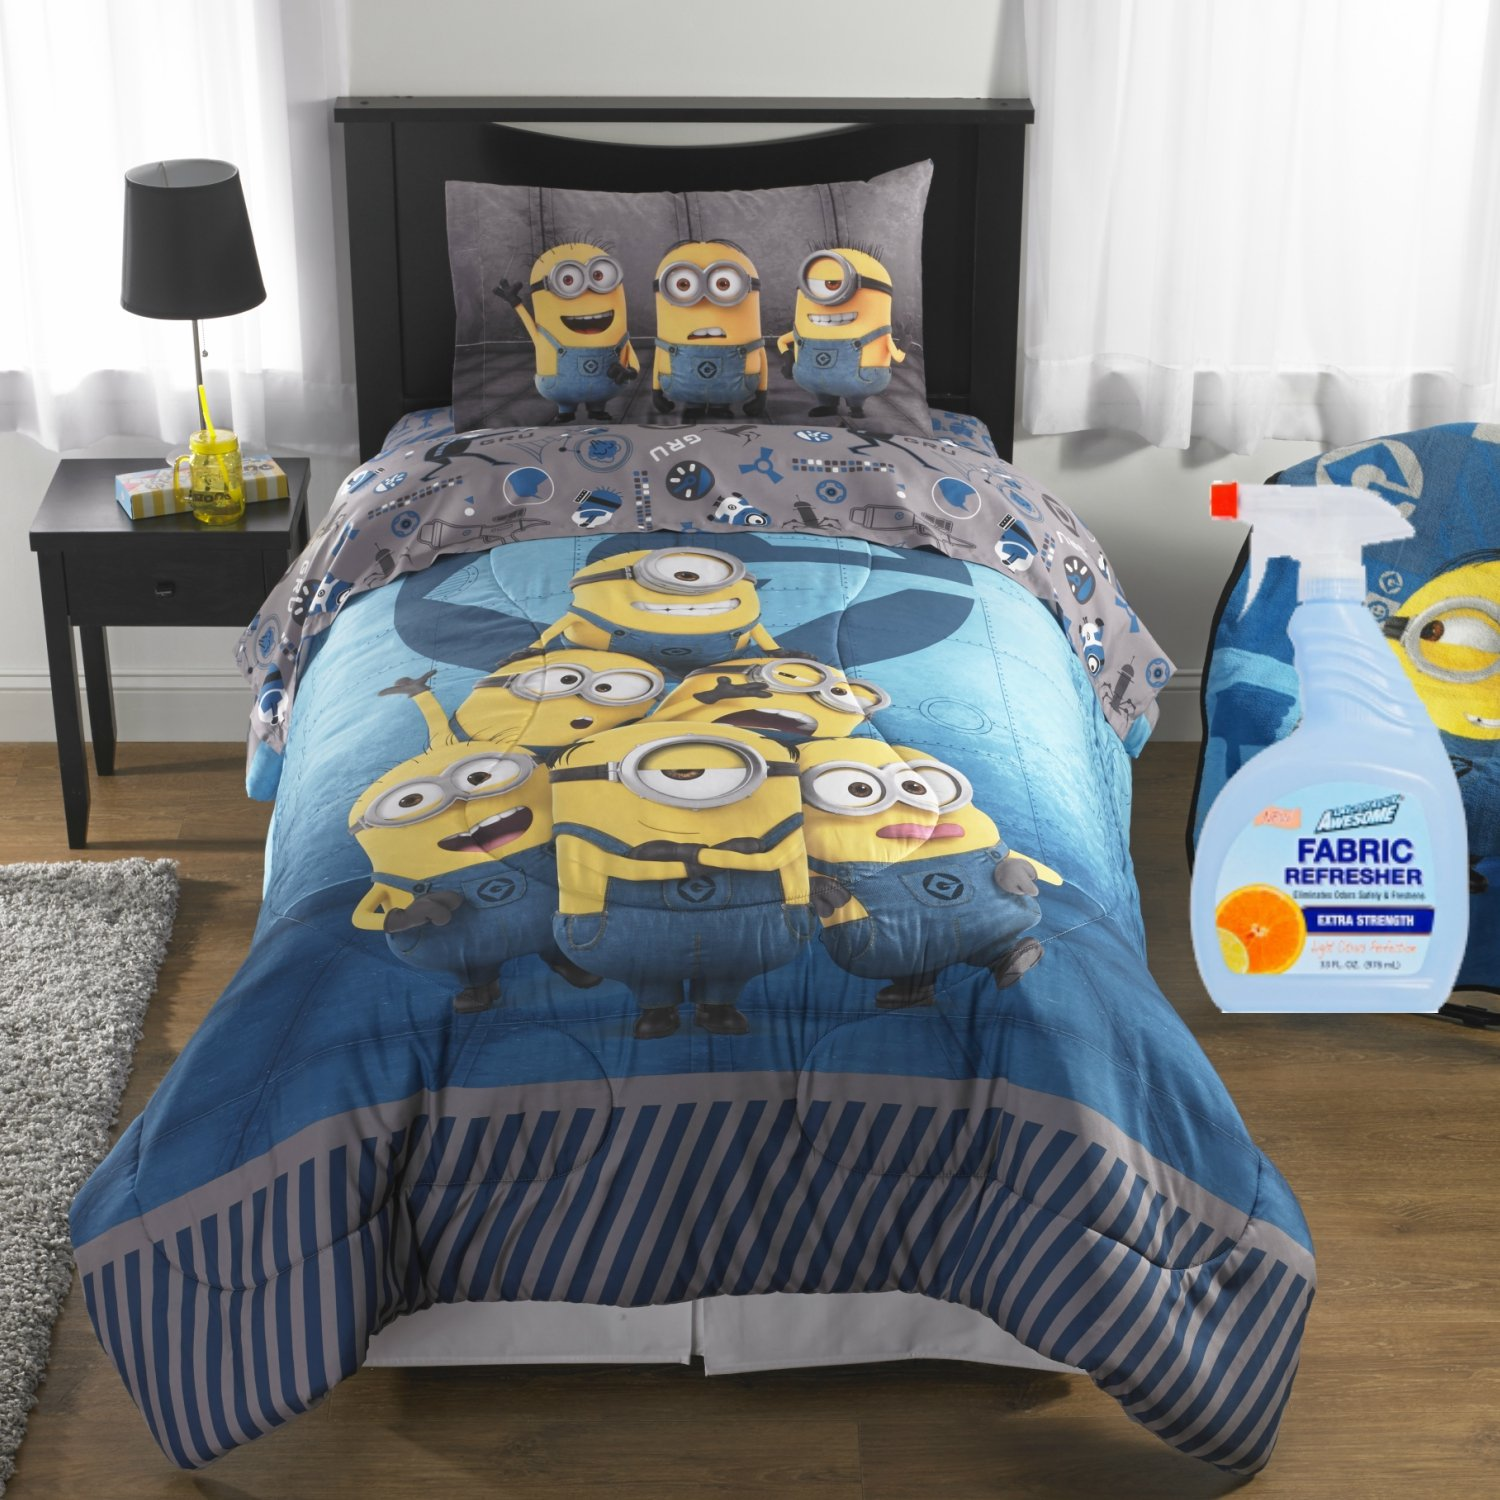 NEW! Minions Despicable Me Follow Mel Kids Bedding 5-Piece Full Reversible Comforter Set with Fabric Refresher